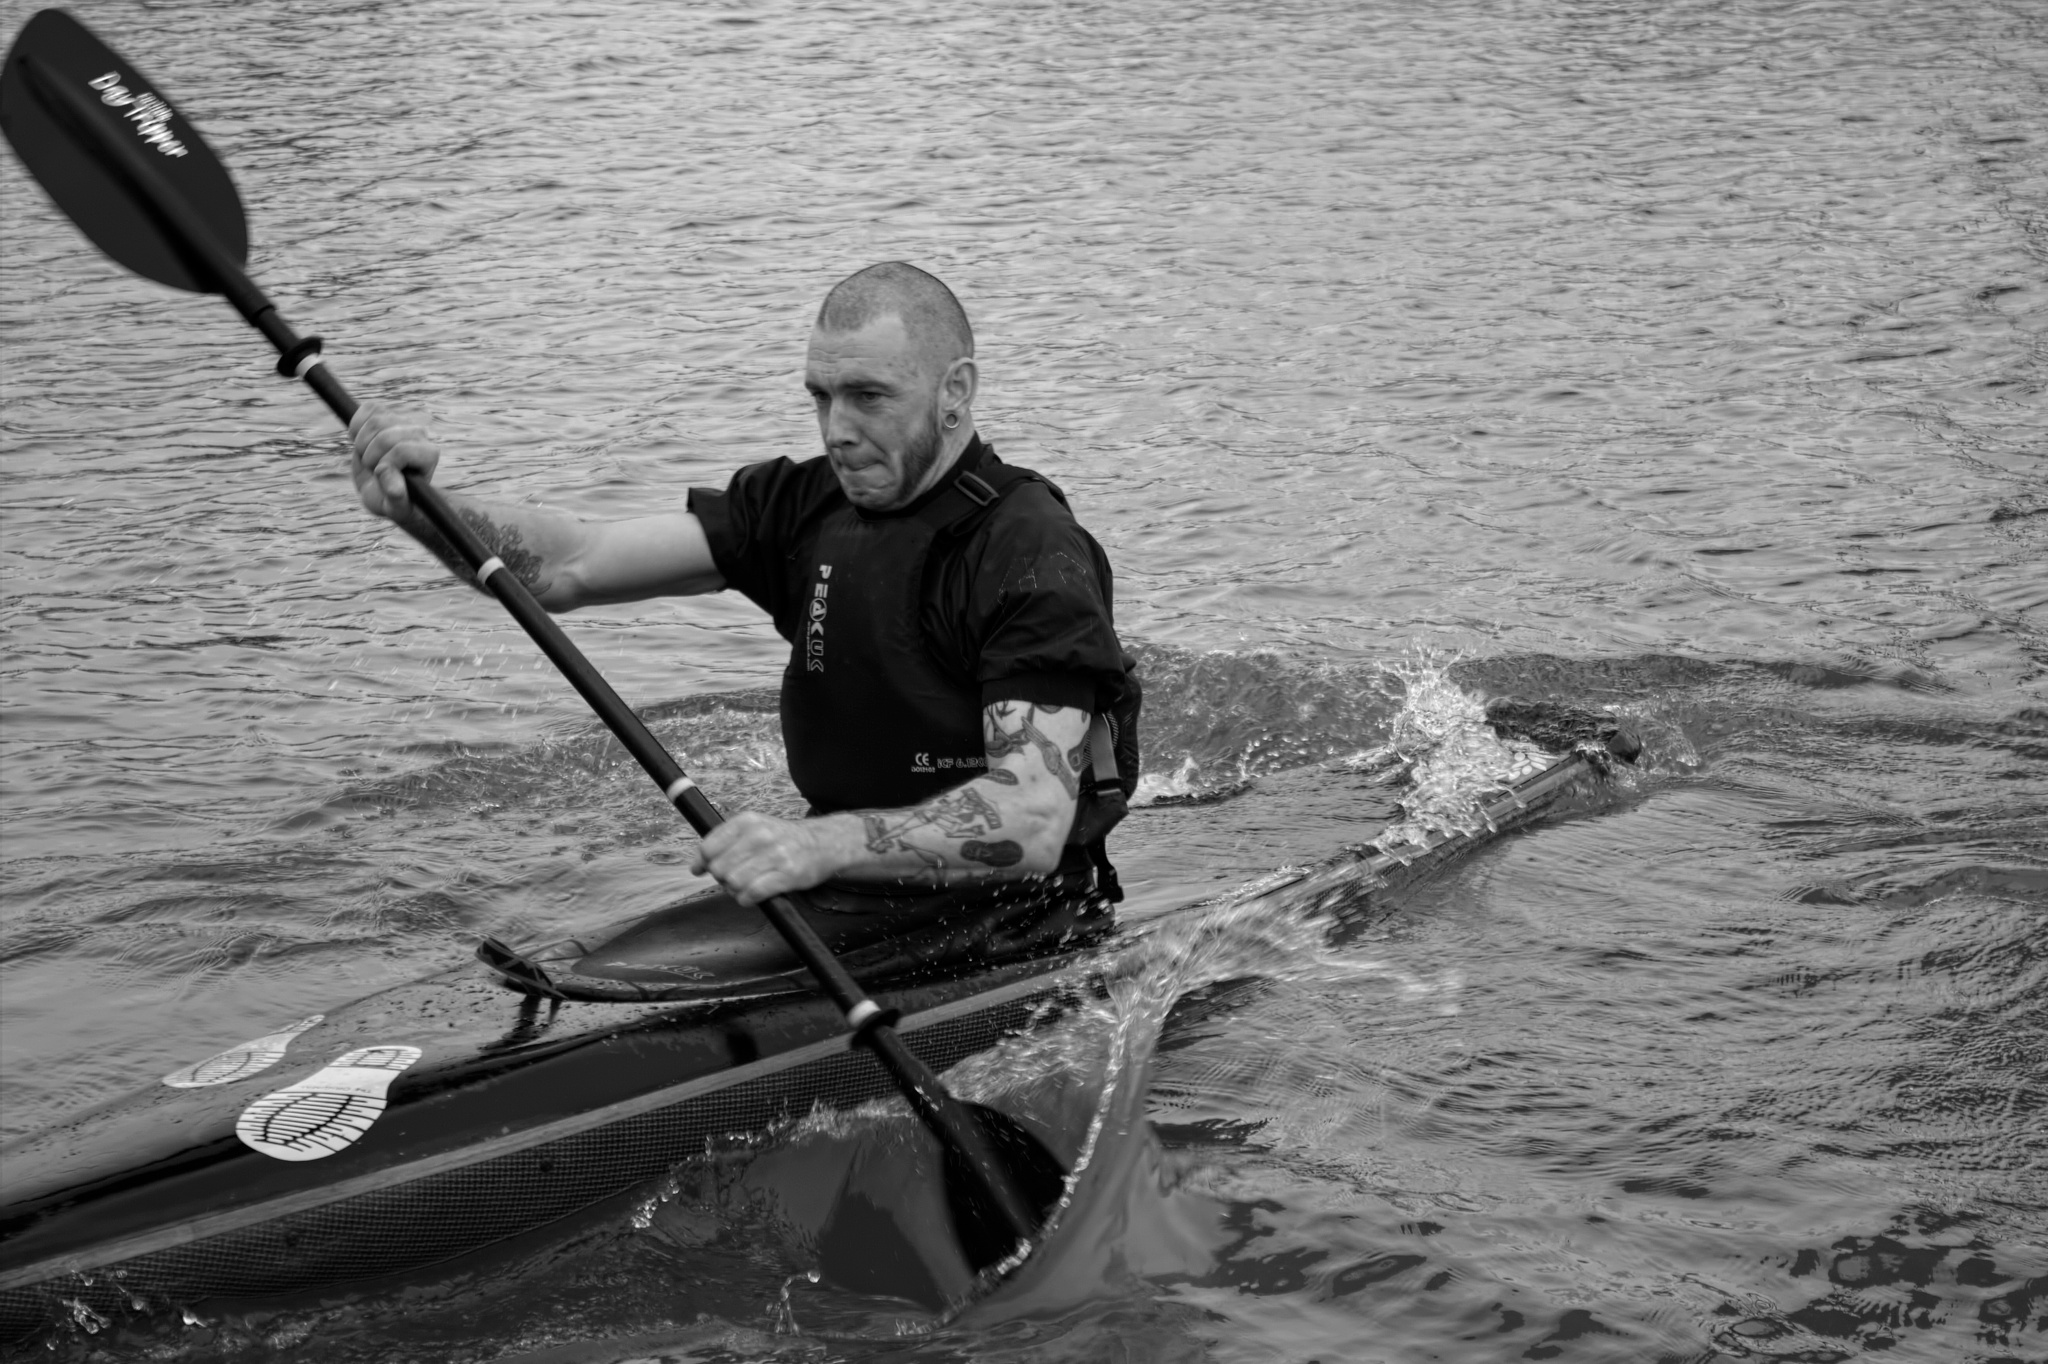 Kayaking by Michelle Connor